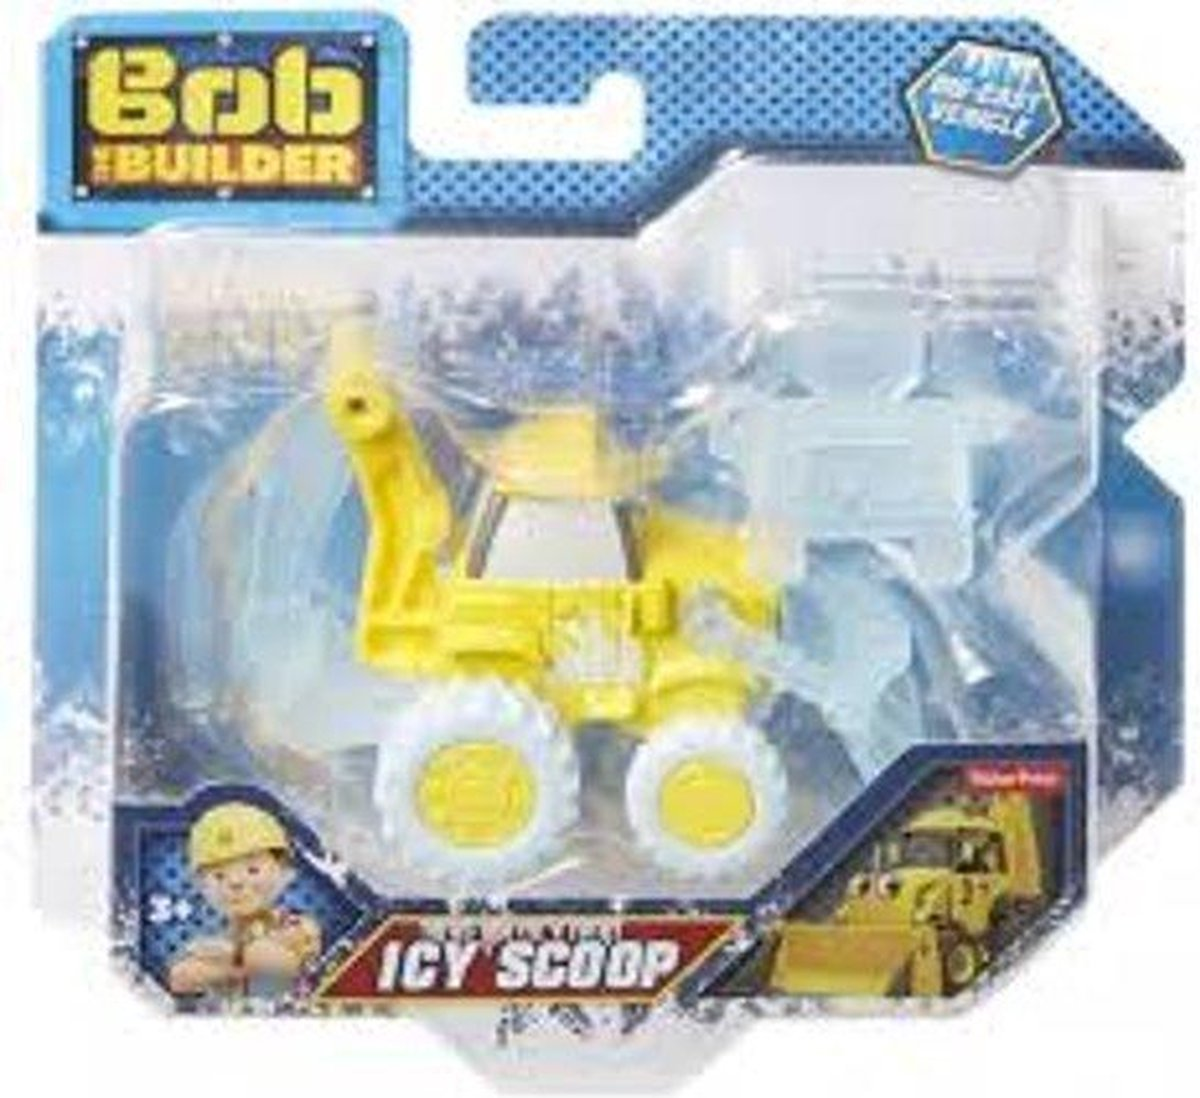 Bob De Bouwer Icy Scoop